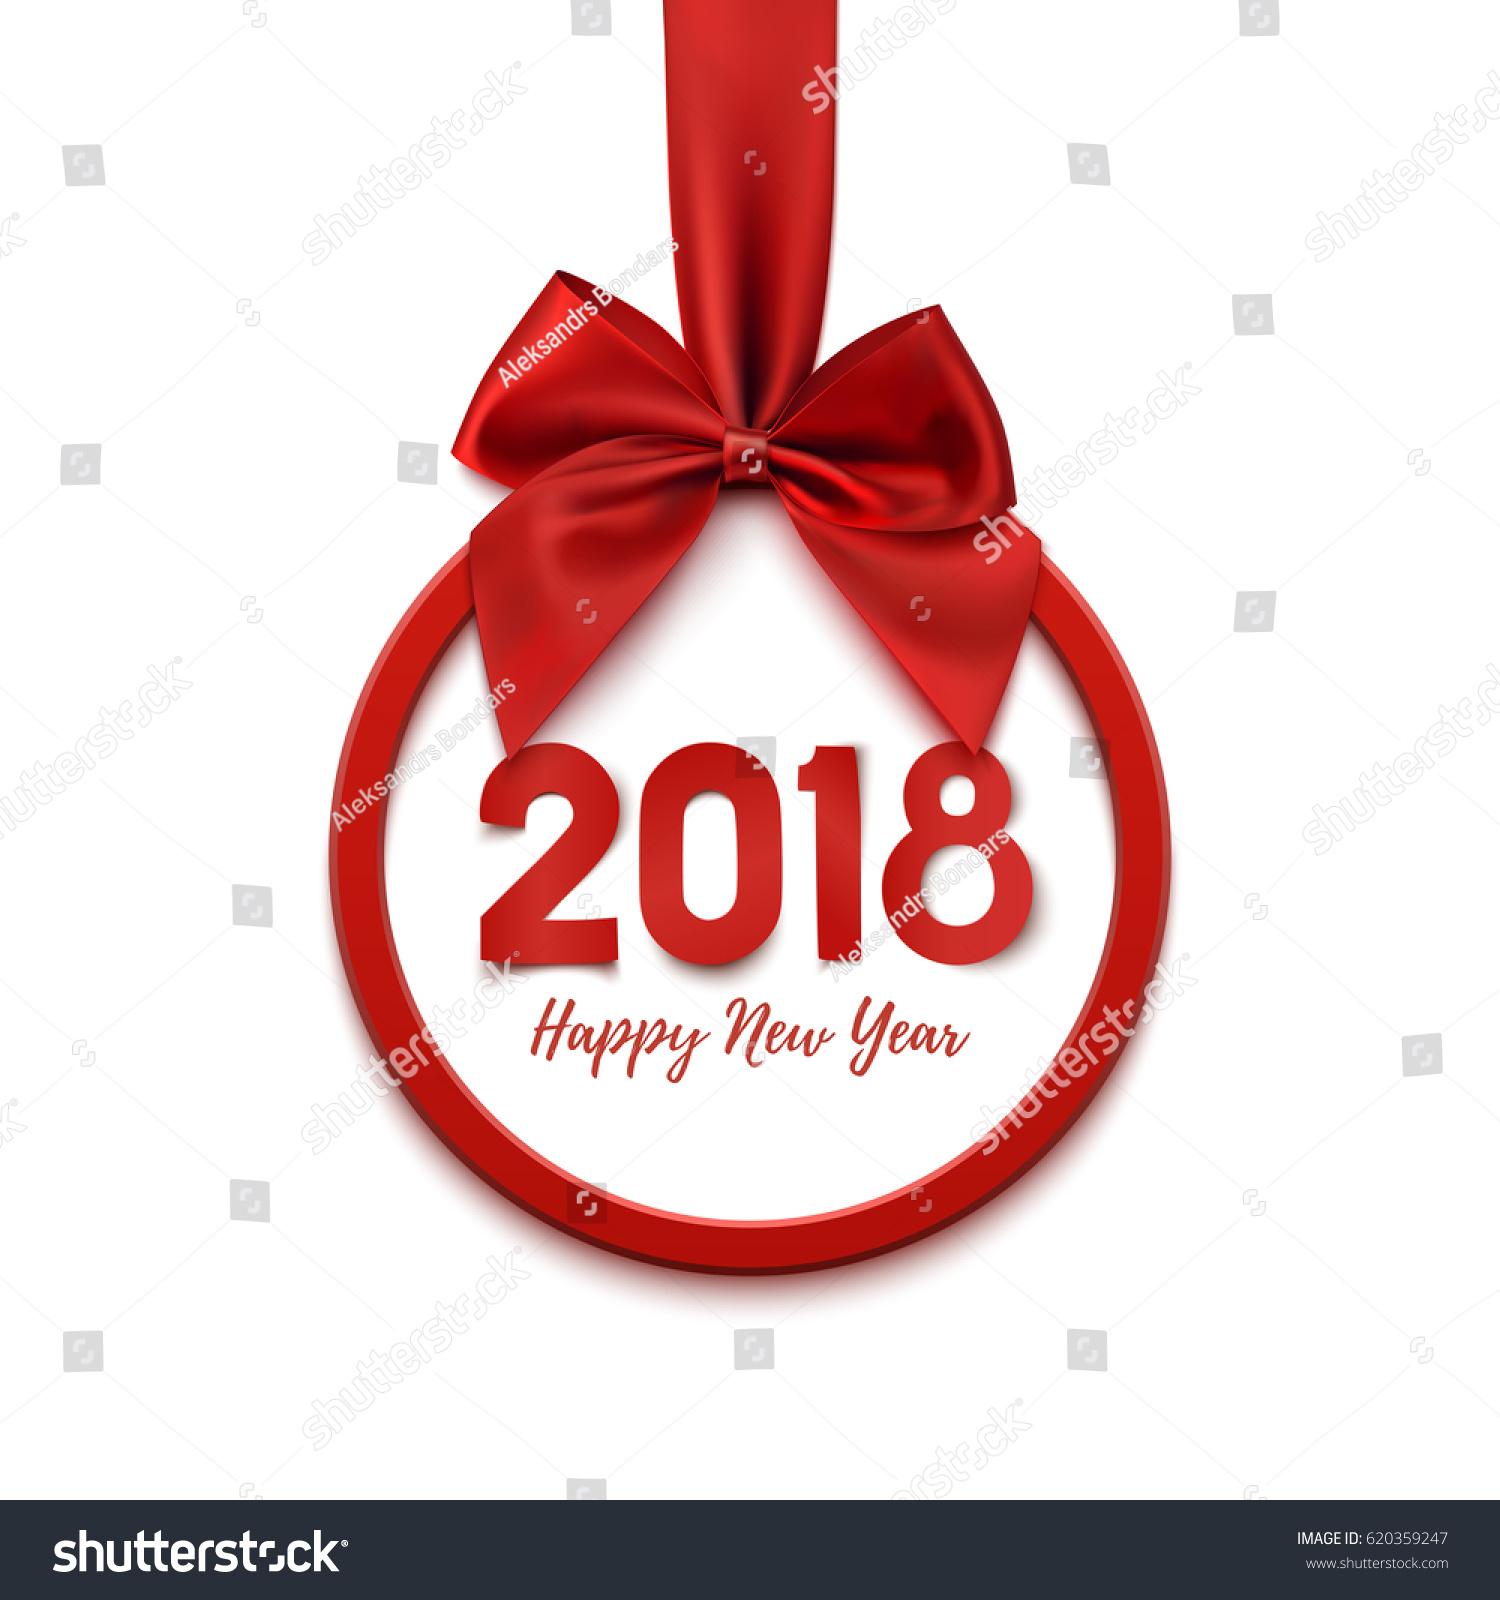 Create New Calendar Xmas One Stop Library Of Pdf Templates And Forms Happy New Year 2018 Round Banner Stock Vector 620359247